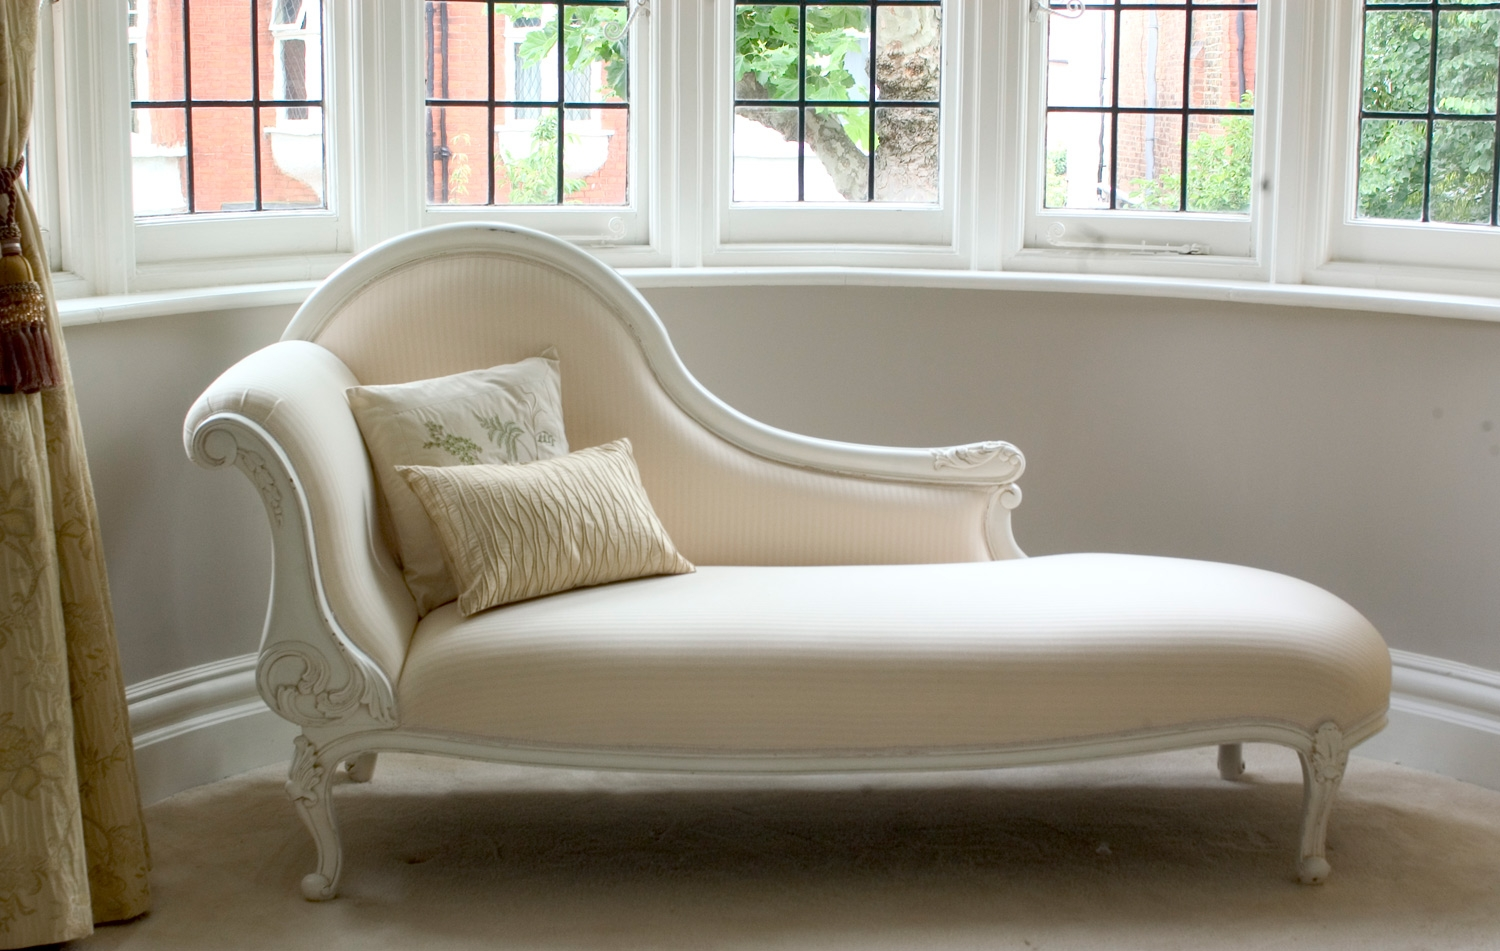 Elegance of living chaise longue sofa designs for Chaise longue style sofa